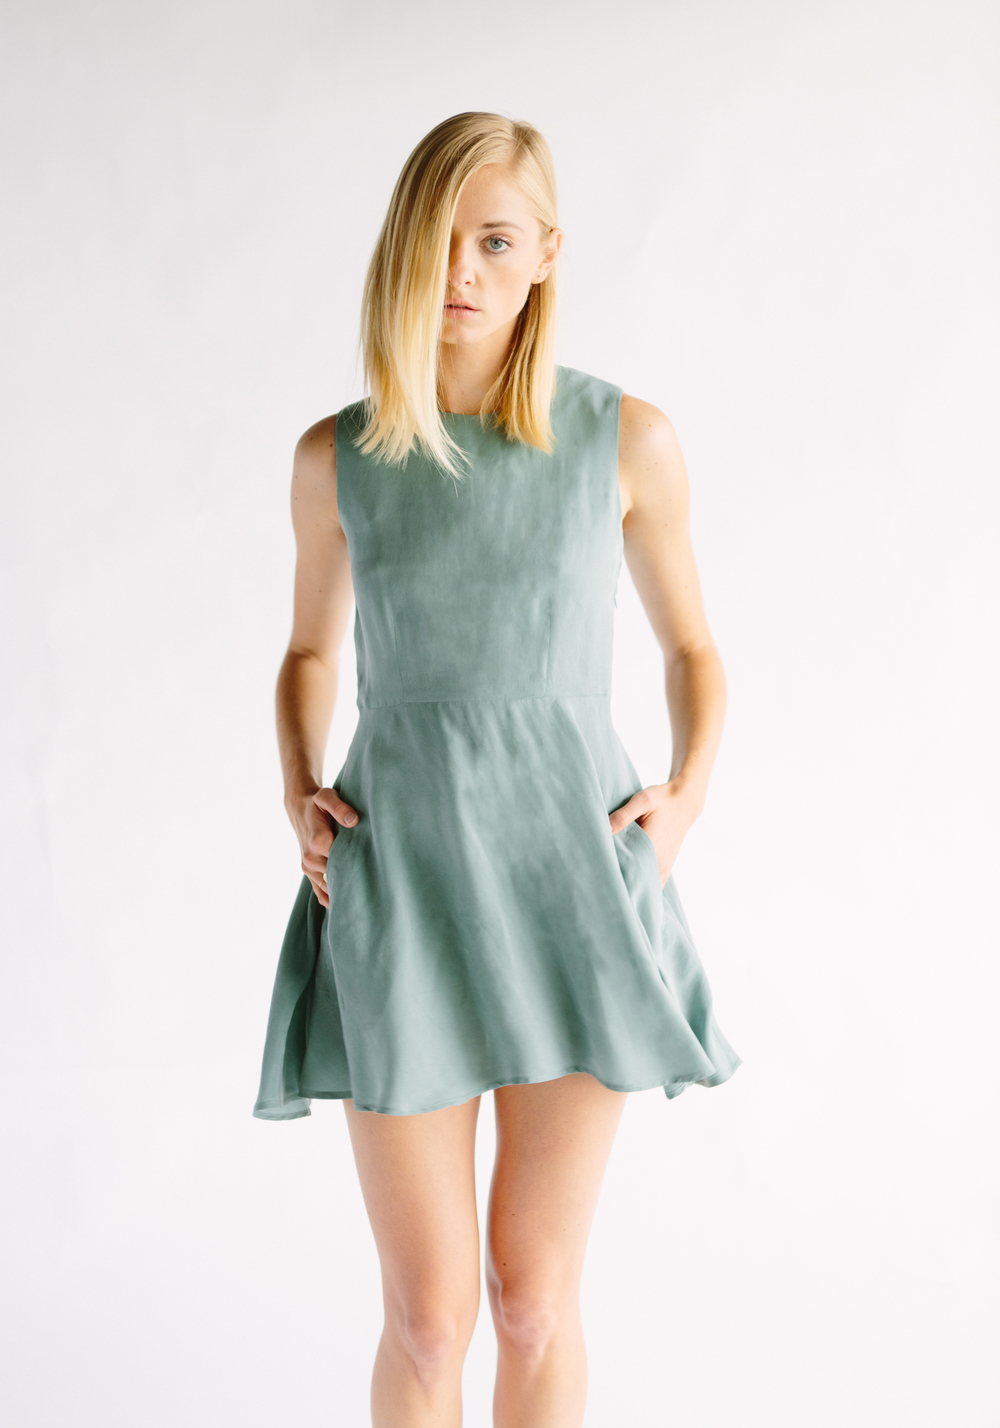 THE IGGY DRESS - SOFT GREEN